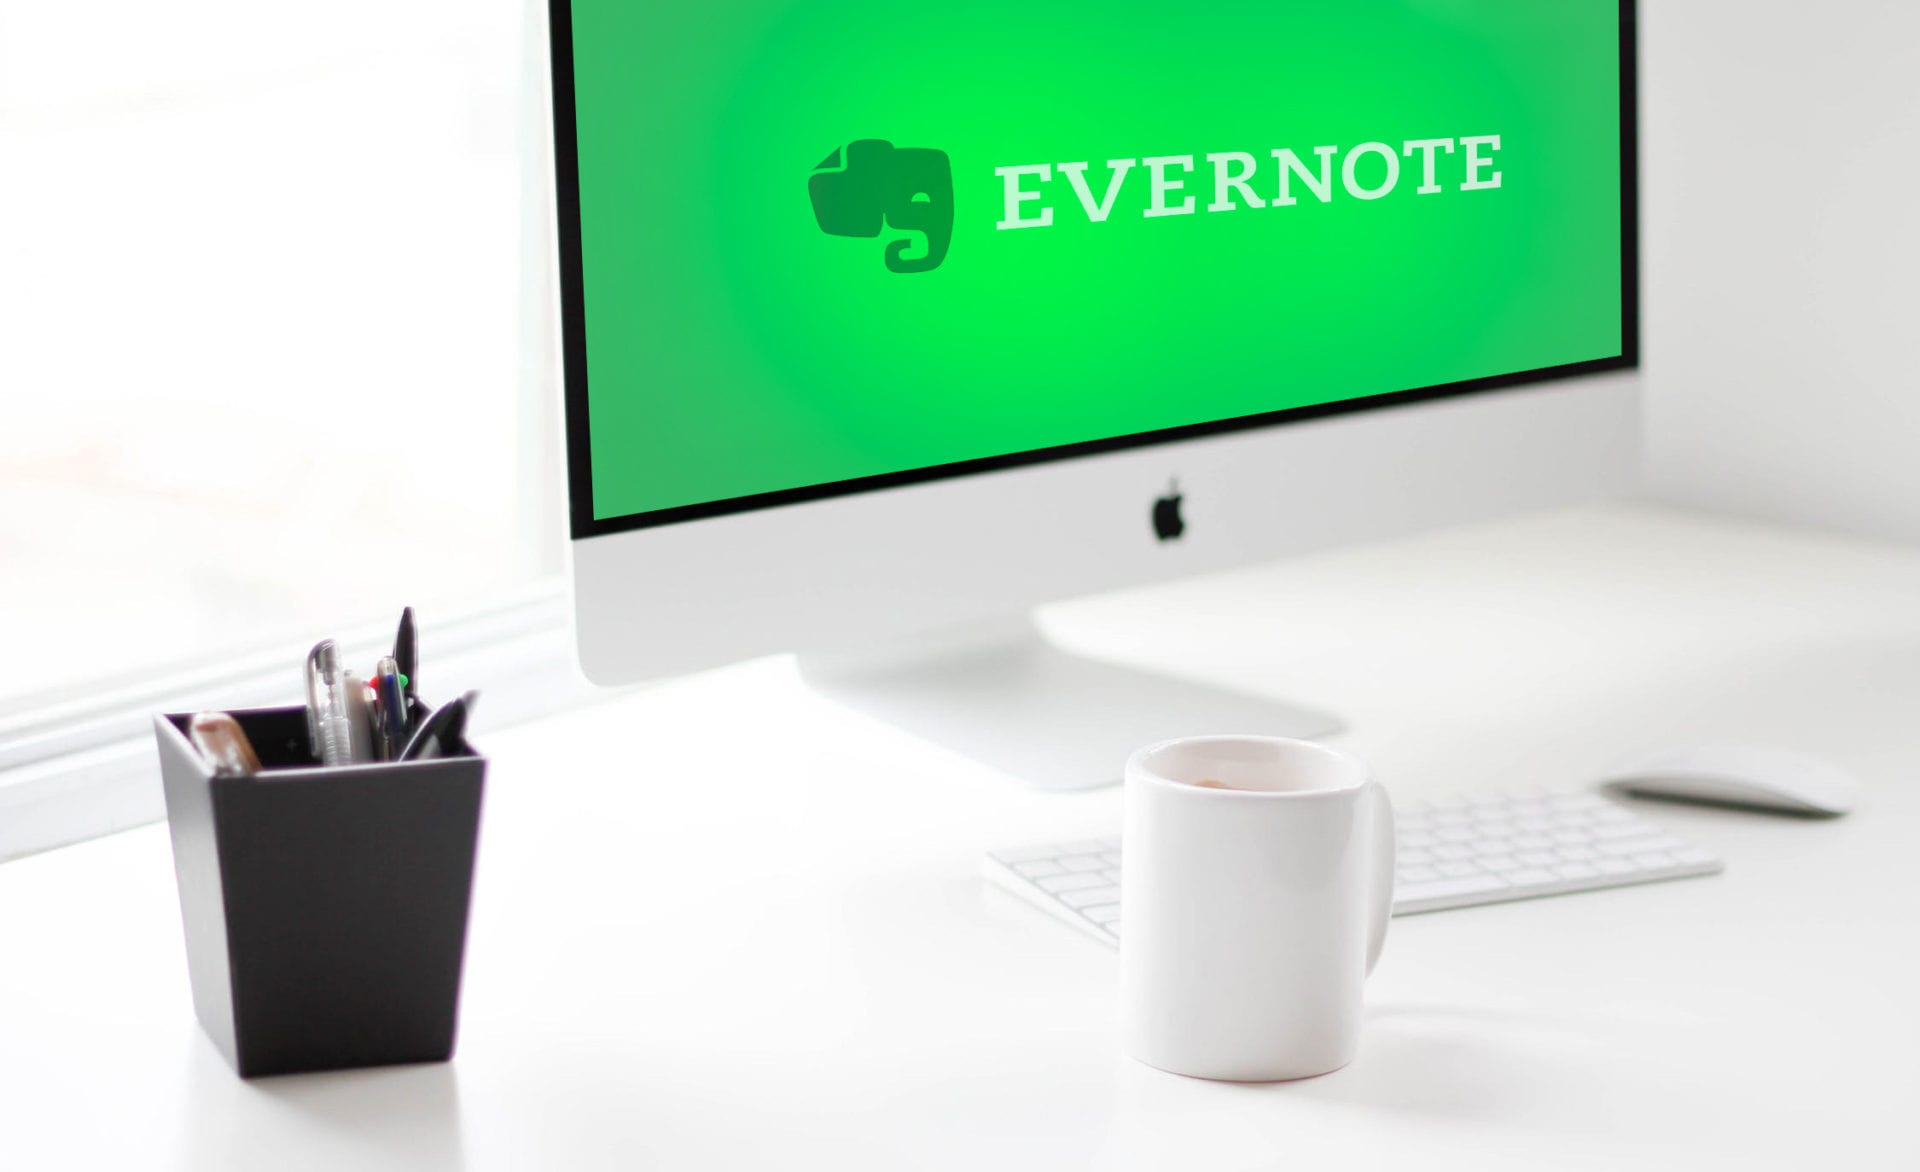 digital office organization services sarasota - Organizing your Life with Evernote